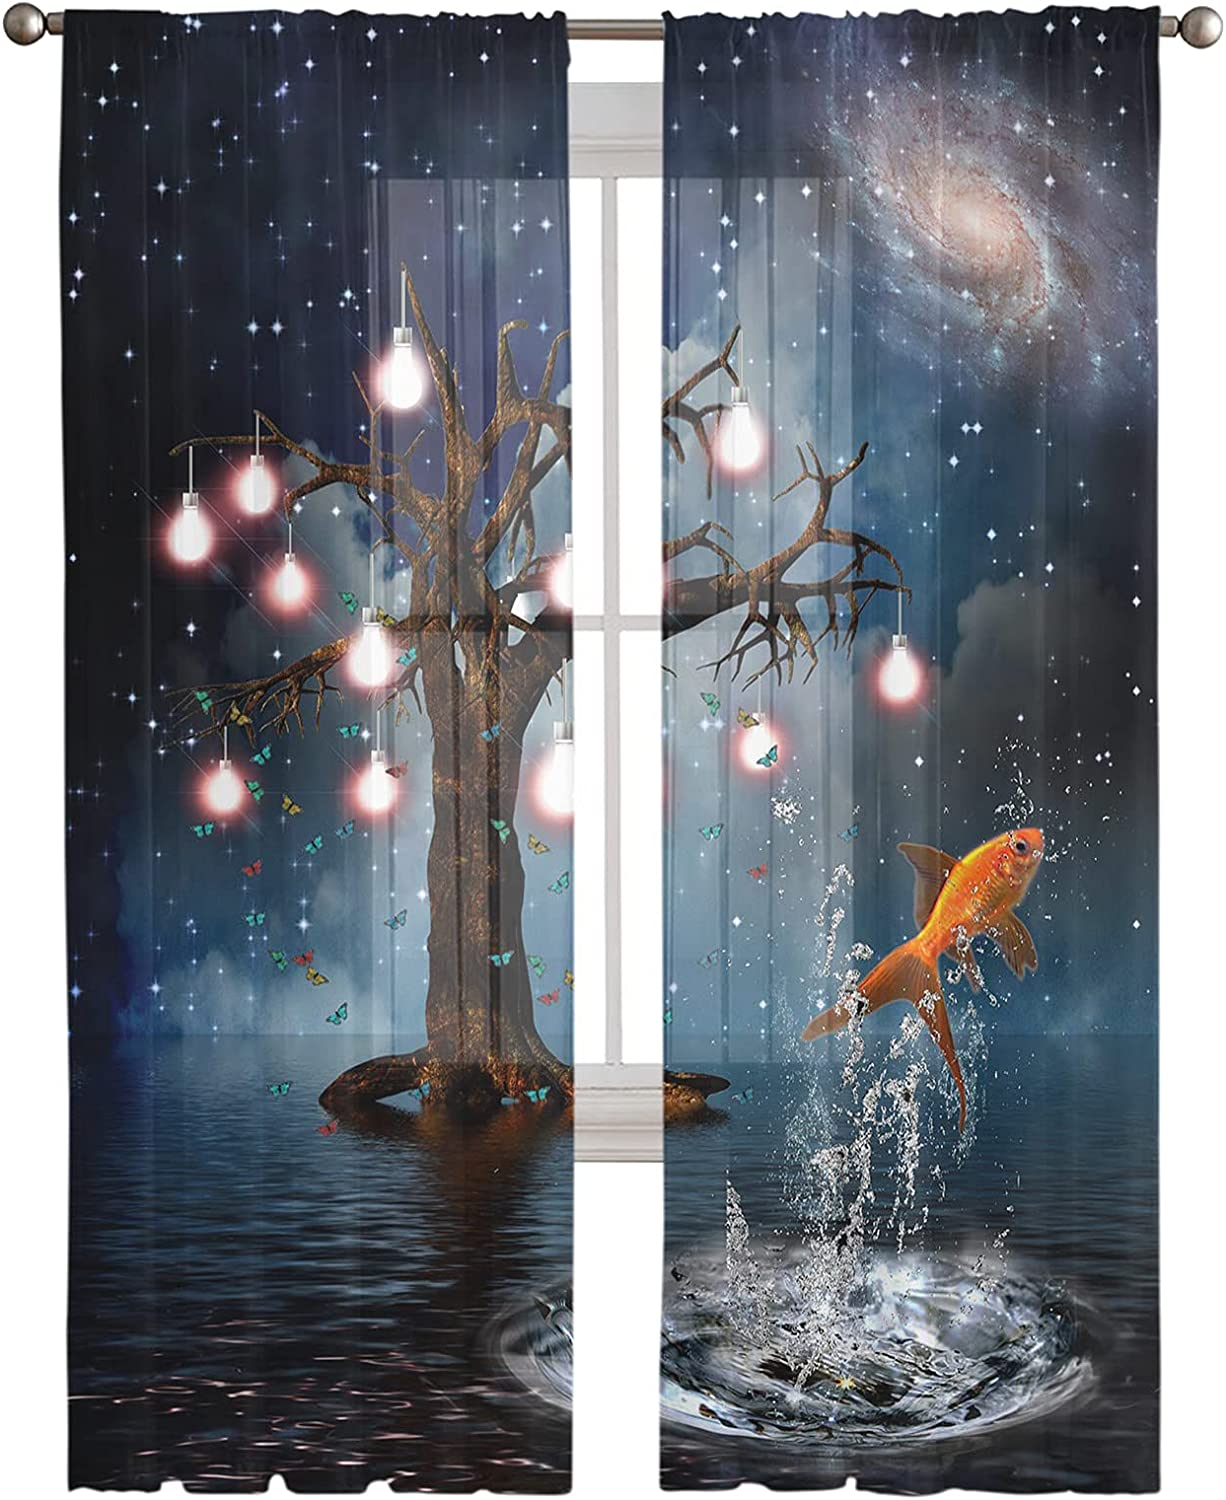 Super beauty product restock quality top! Sheer New York Mall Curtains Dead Tree with Carp Butterfl Decor Bright Jumping